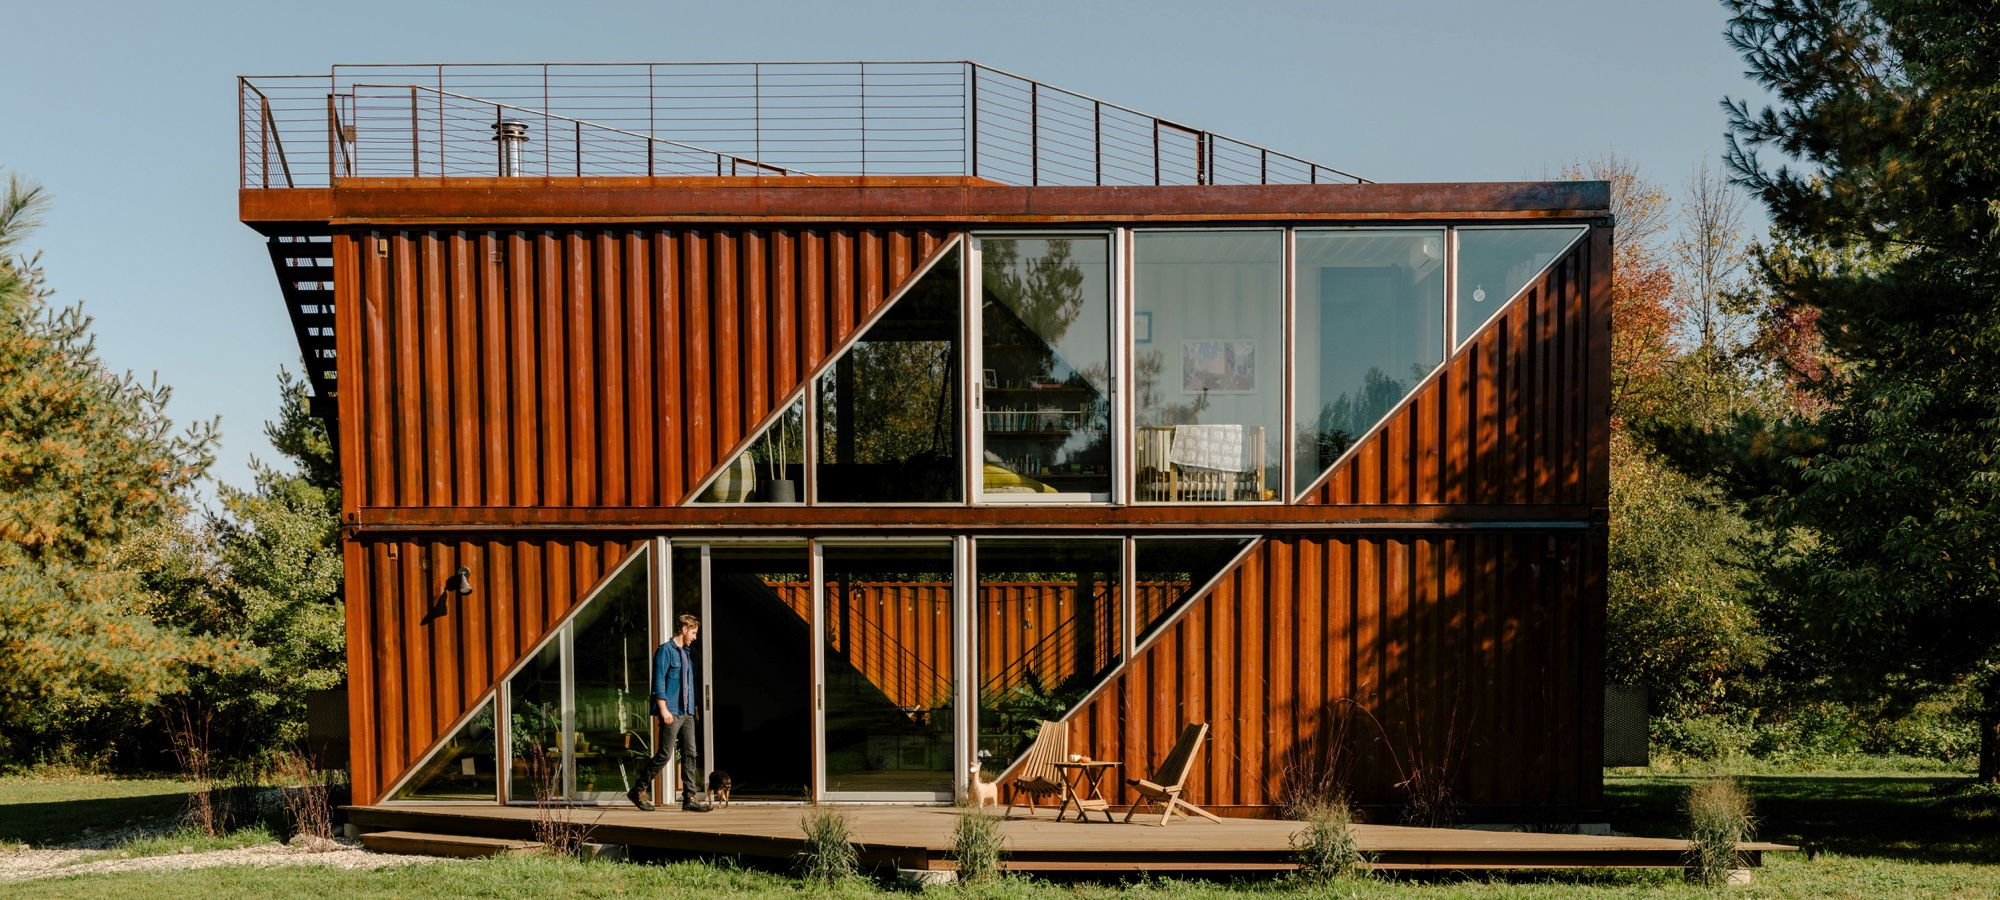 The upstate new york home is built sustainably from old shipping containers.